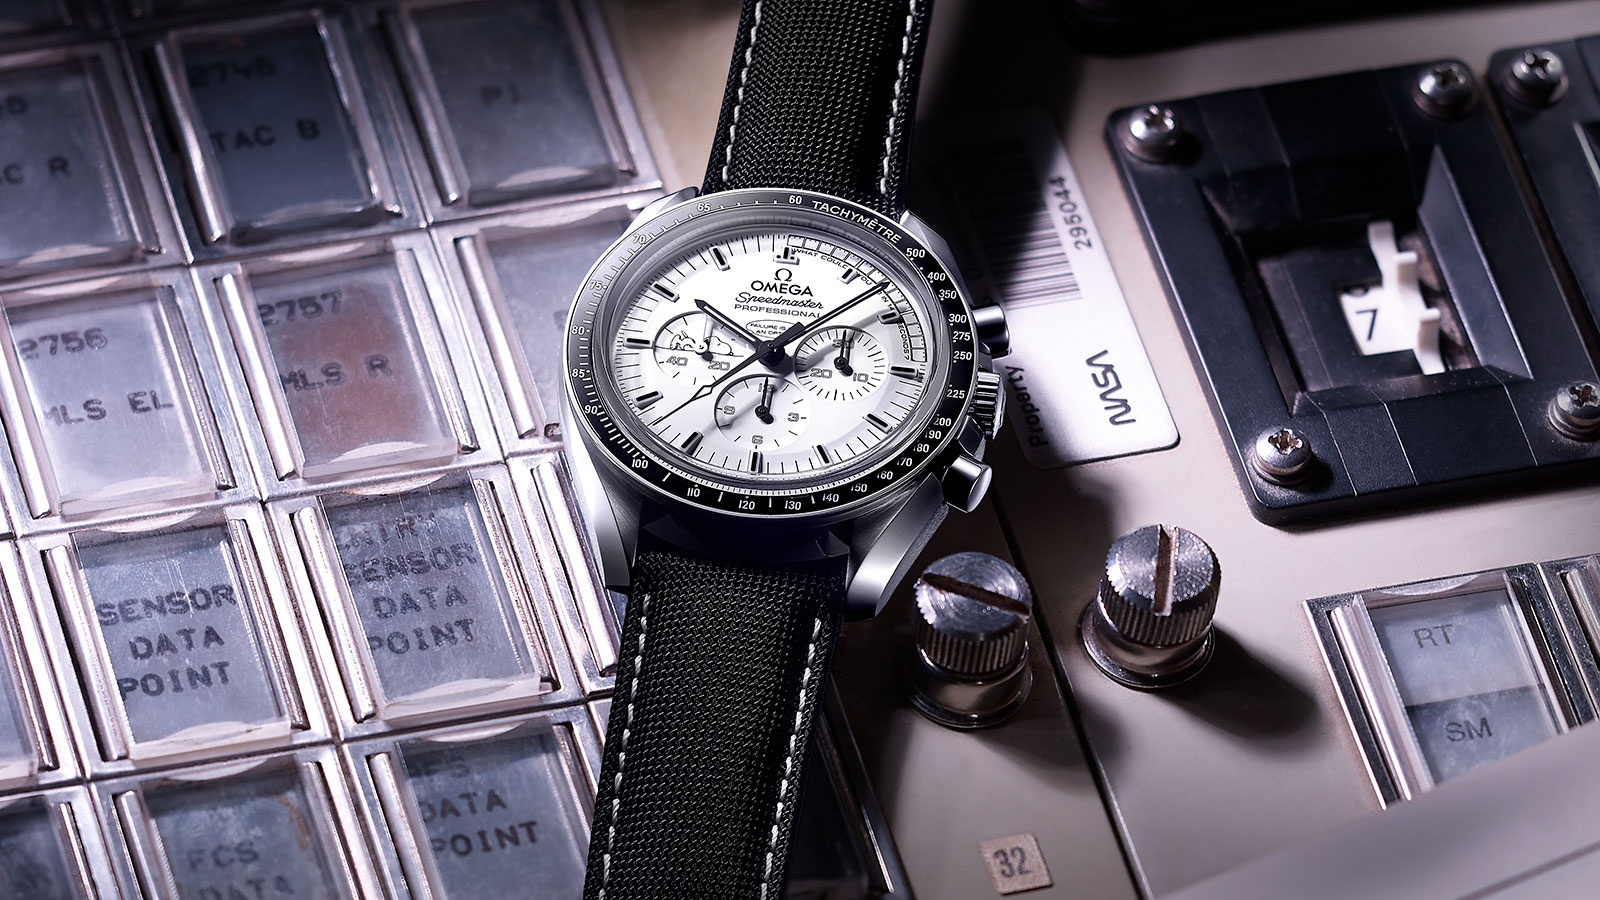 Speedmaster Moonwatch Moonwatch Anniversary Limited Series Referenz - 311.32.42.30.04.003